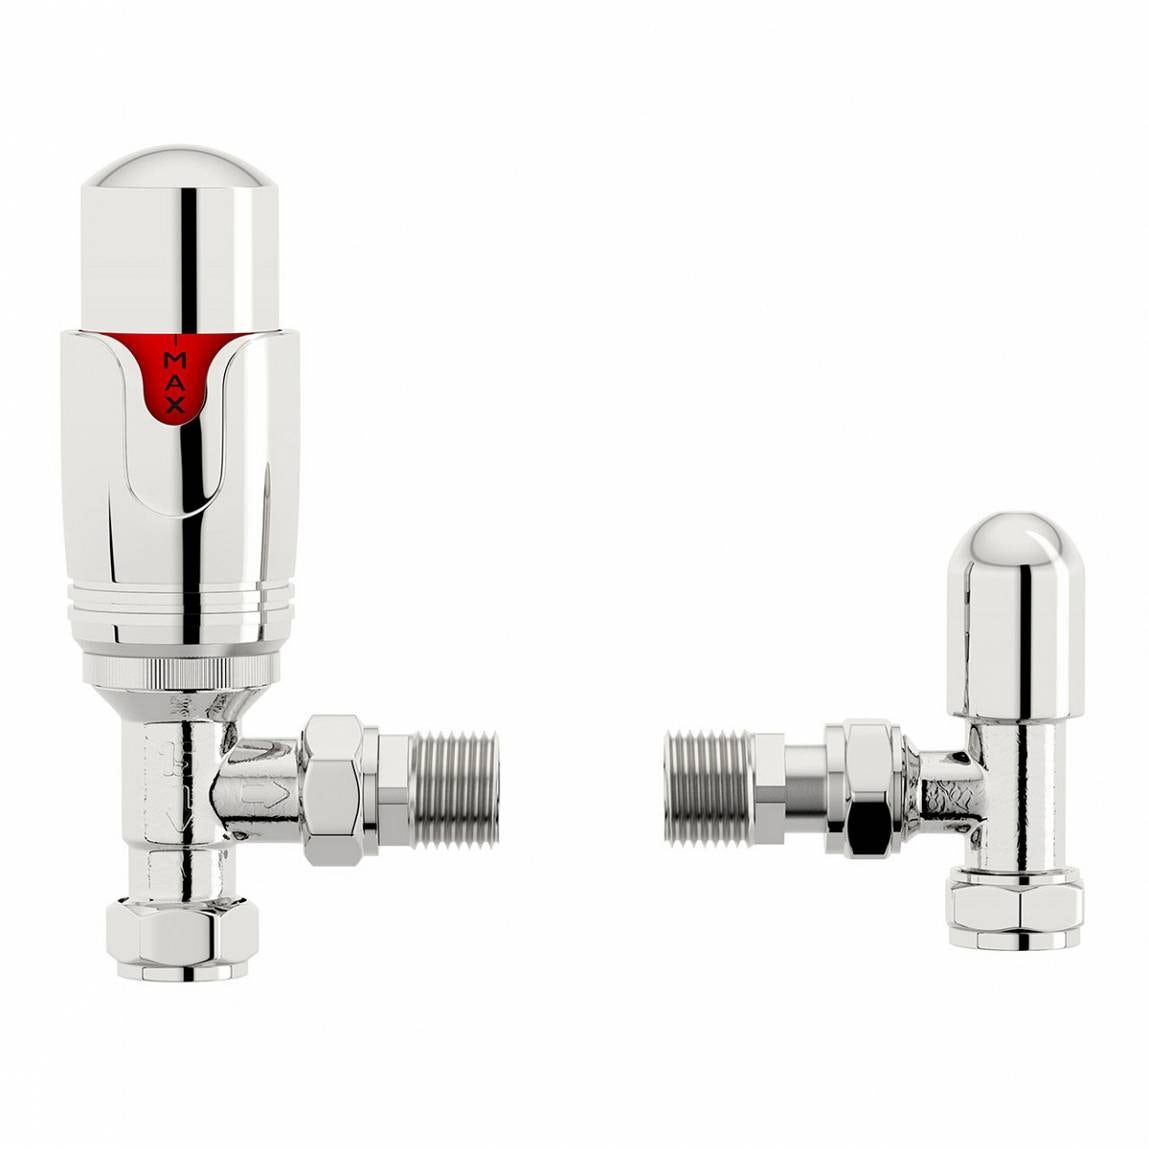 Orchard Thermostatic chrome angled radiator valves